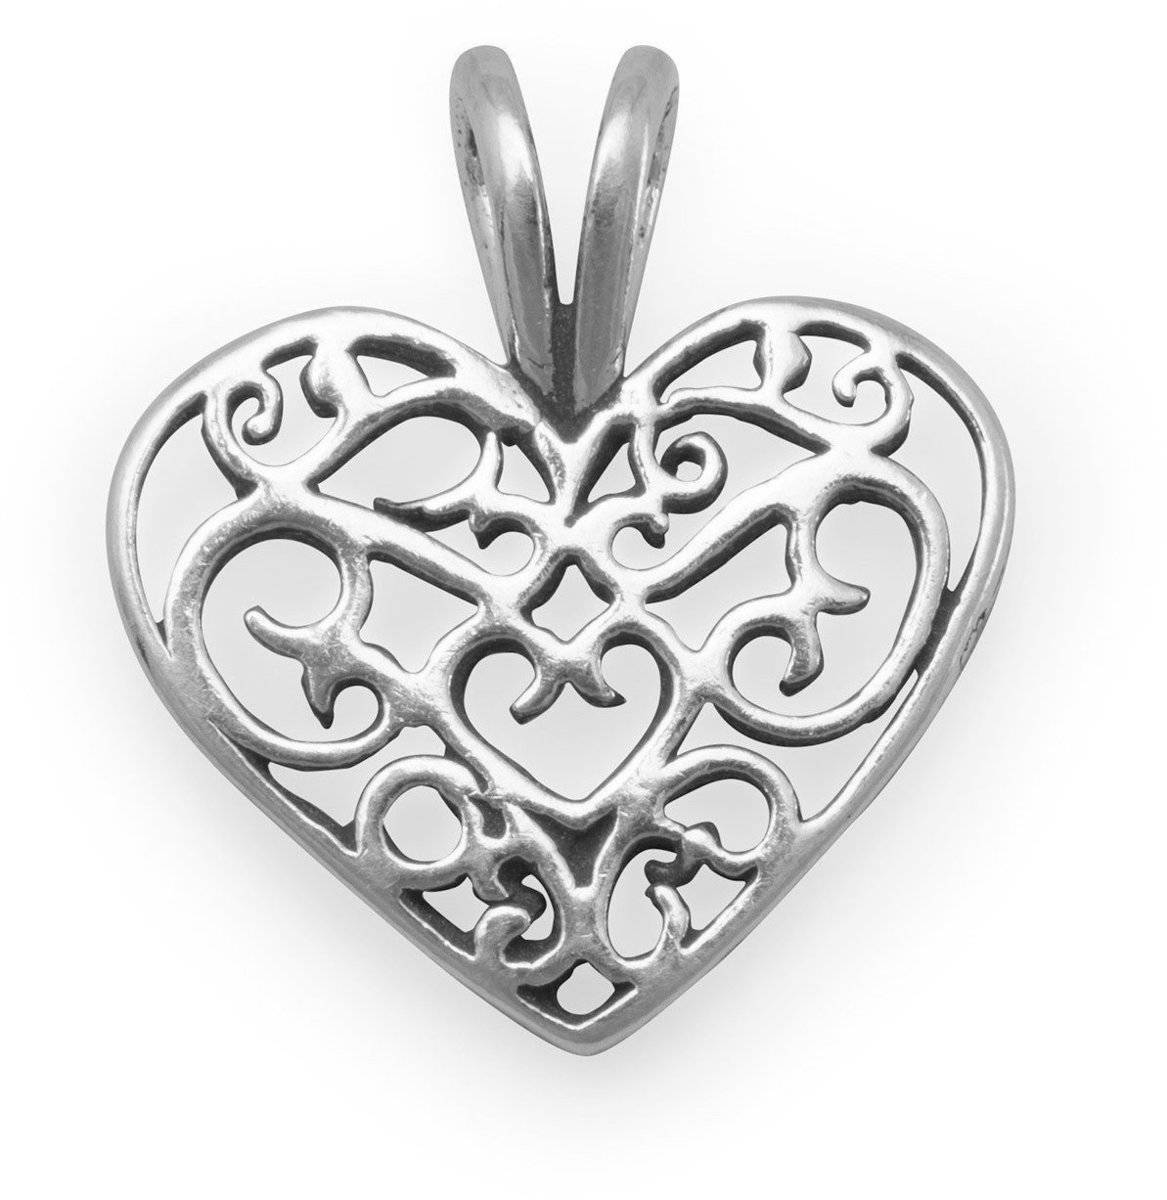 Filigree Heart Charm 925 Sterling Silver